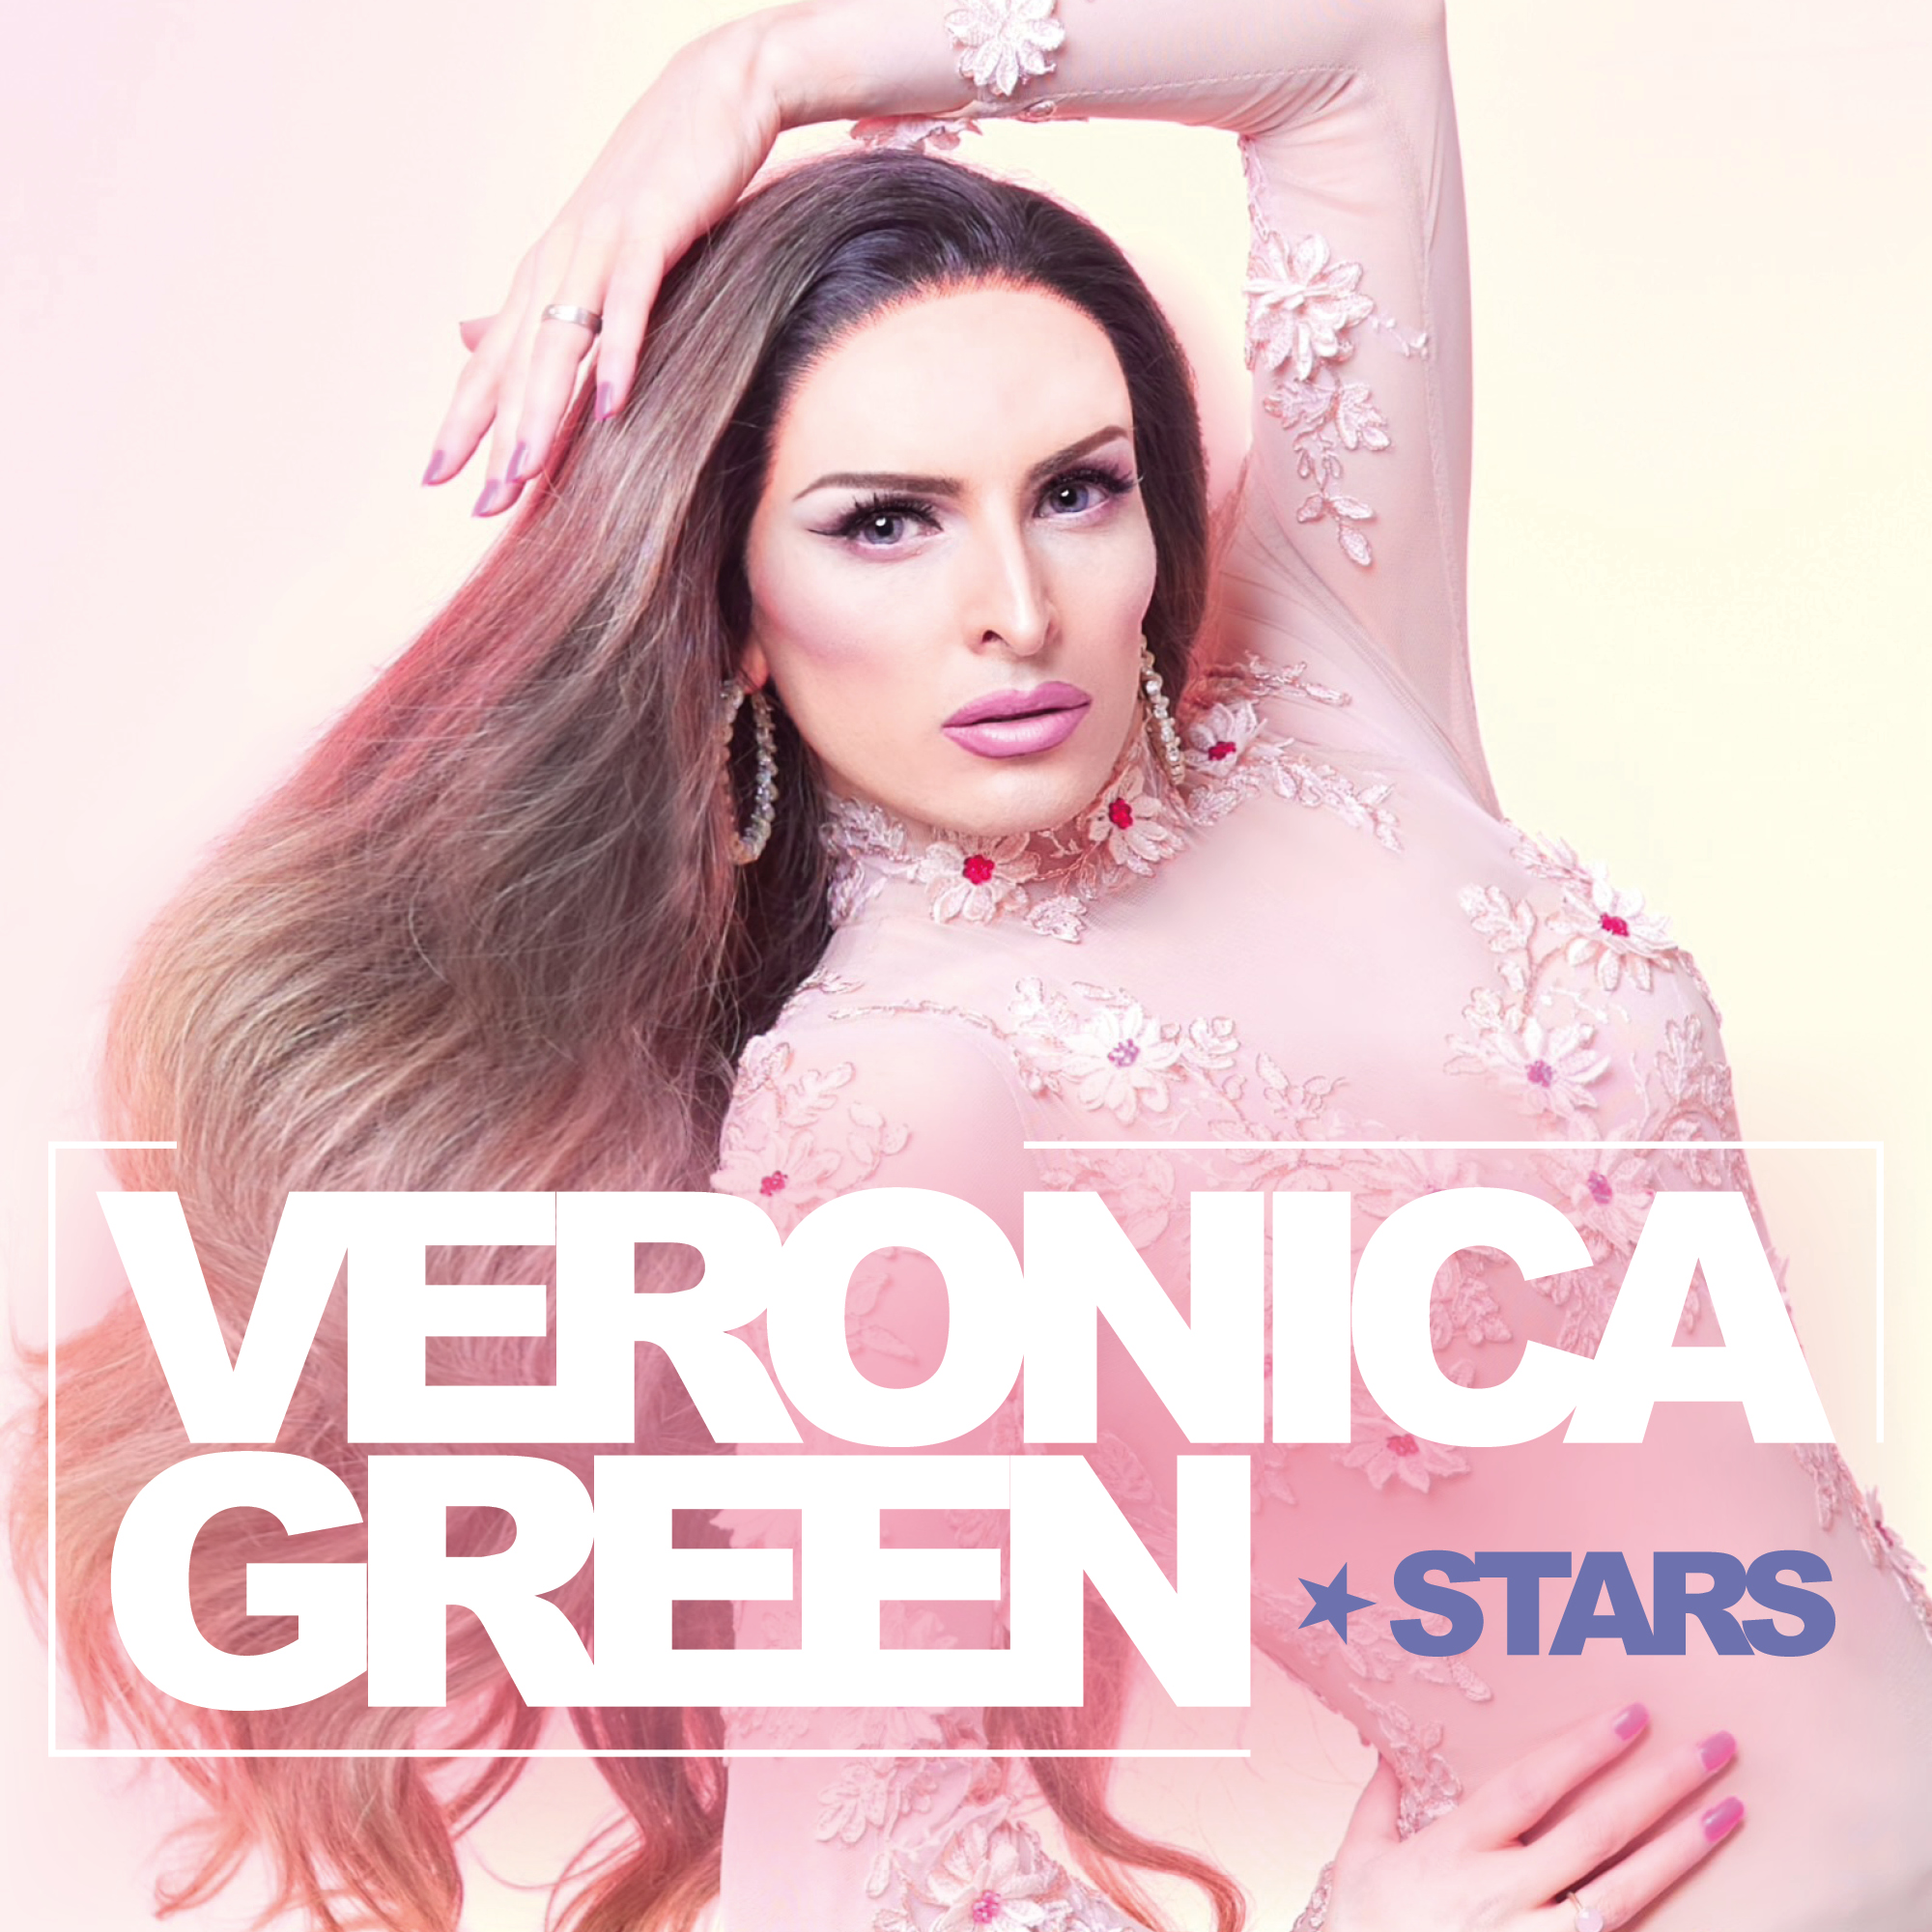 Veronica Green Releases Beautiful Video To Debut Single 'Stars'